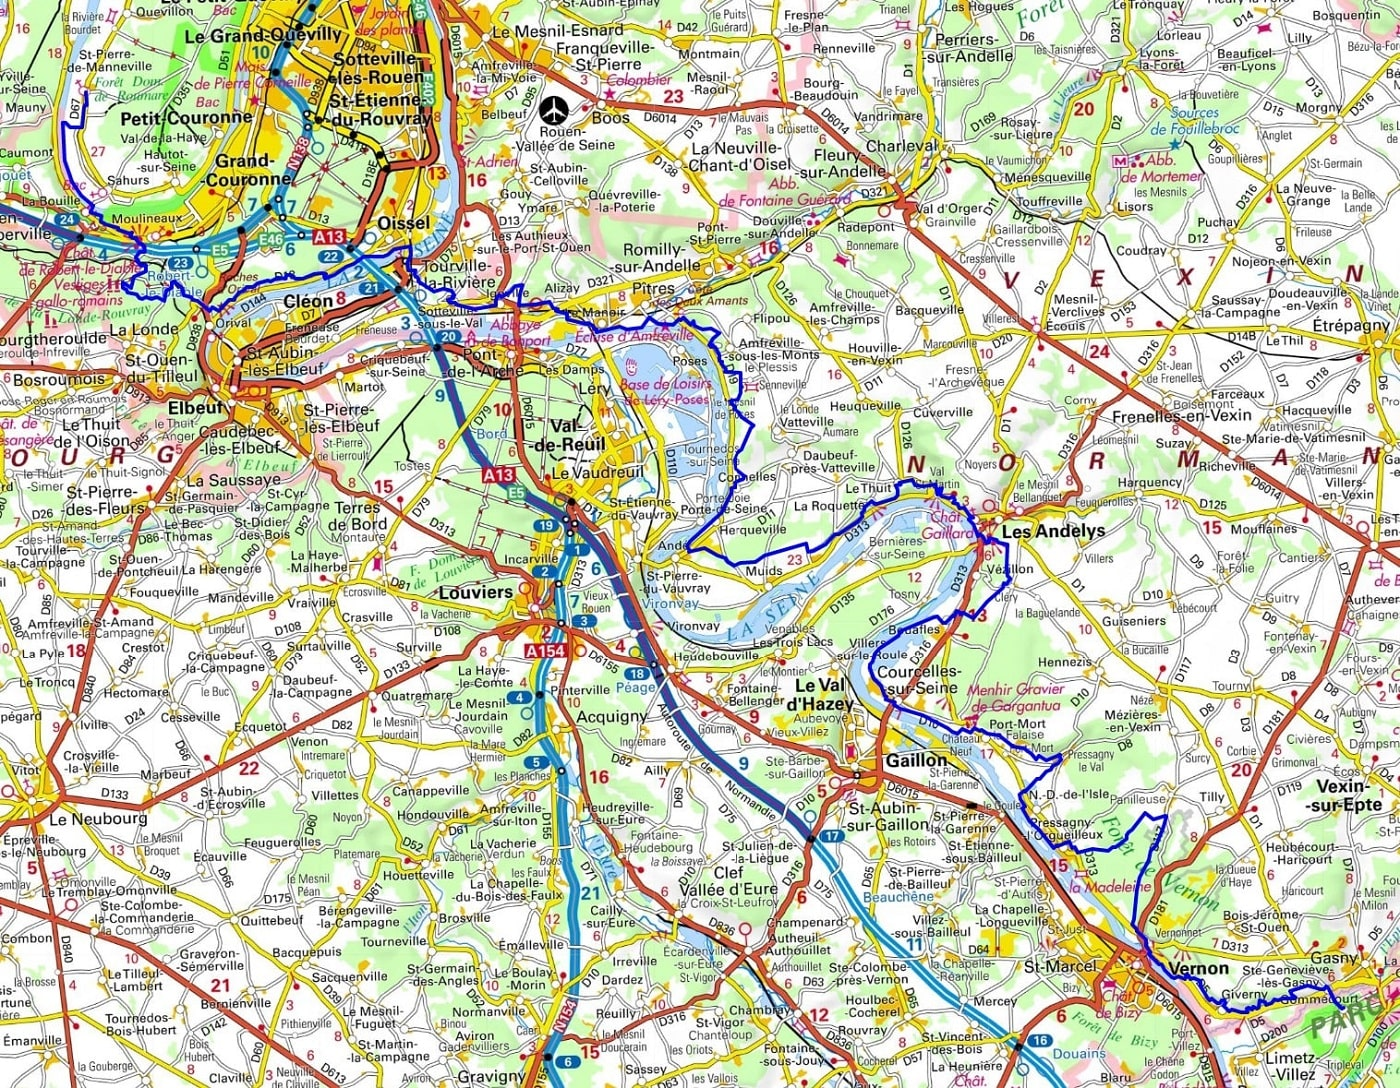 GR2 Walking from Gommecourt (Yvelines) to St Pierre-de-Manneville (Seine-Maritime)